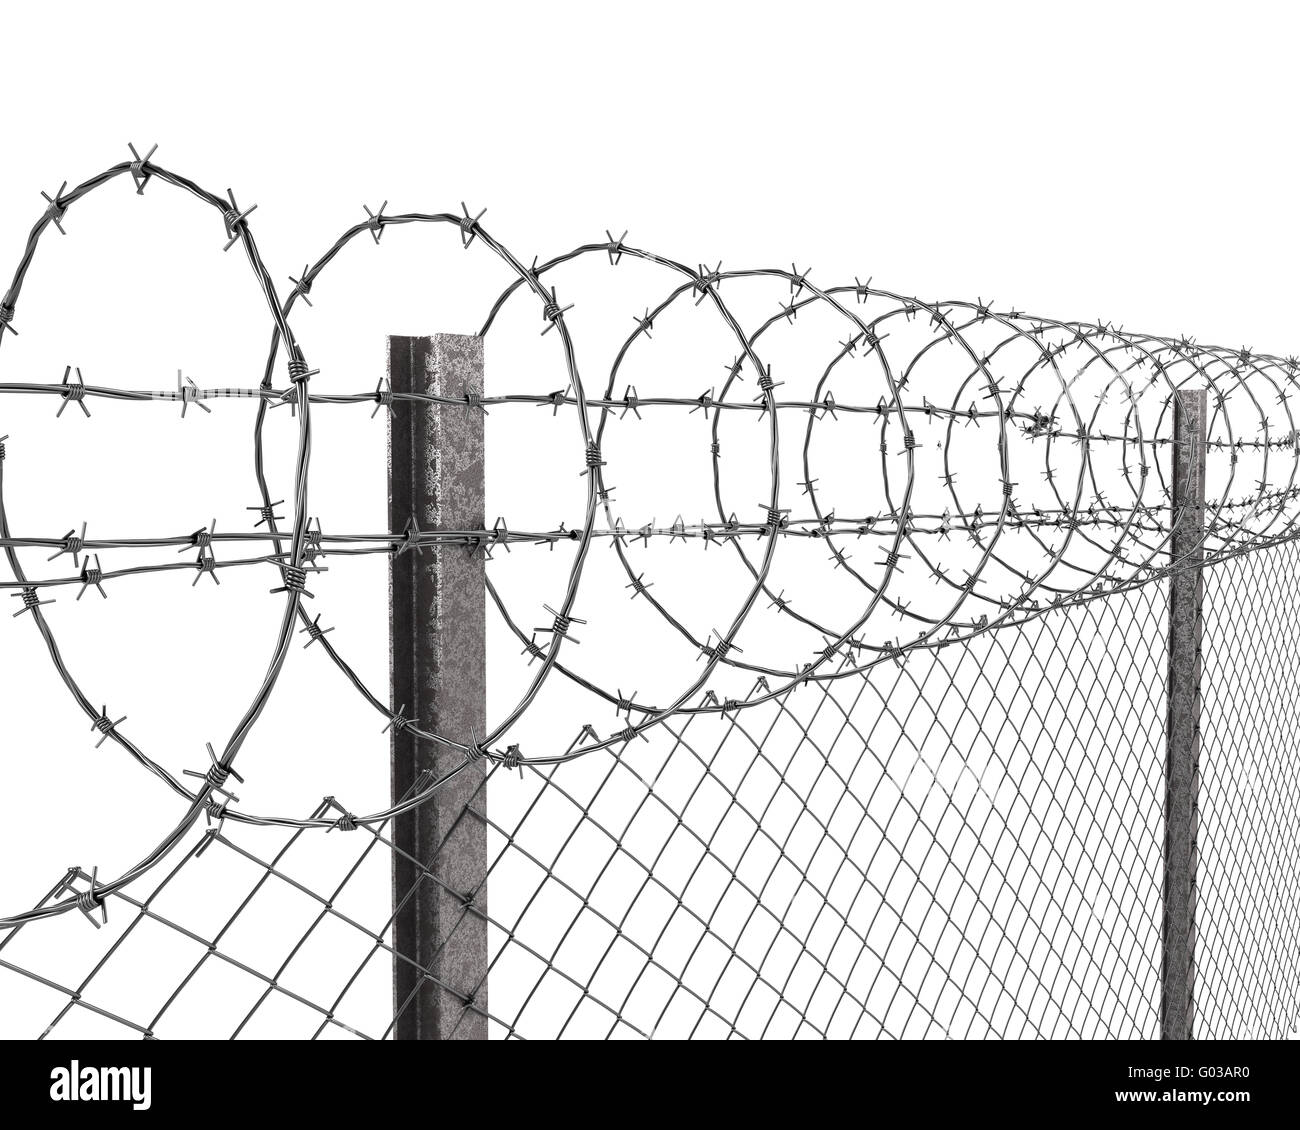 Enchanting 6 Woven Wire Fence Image Collection - Electrical Diagram ...